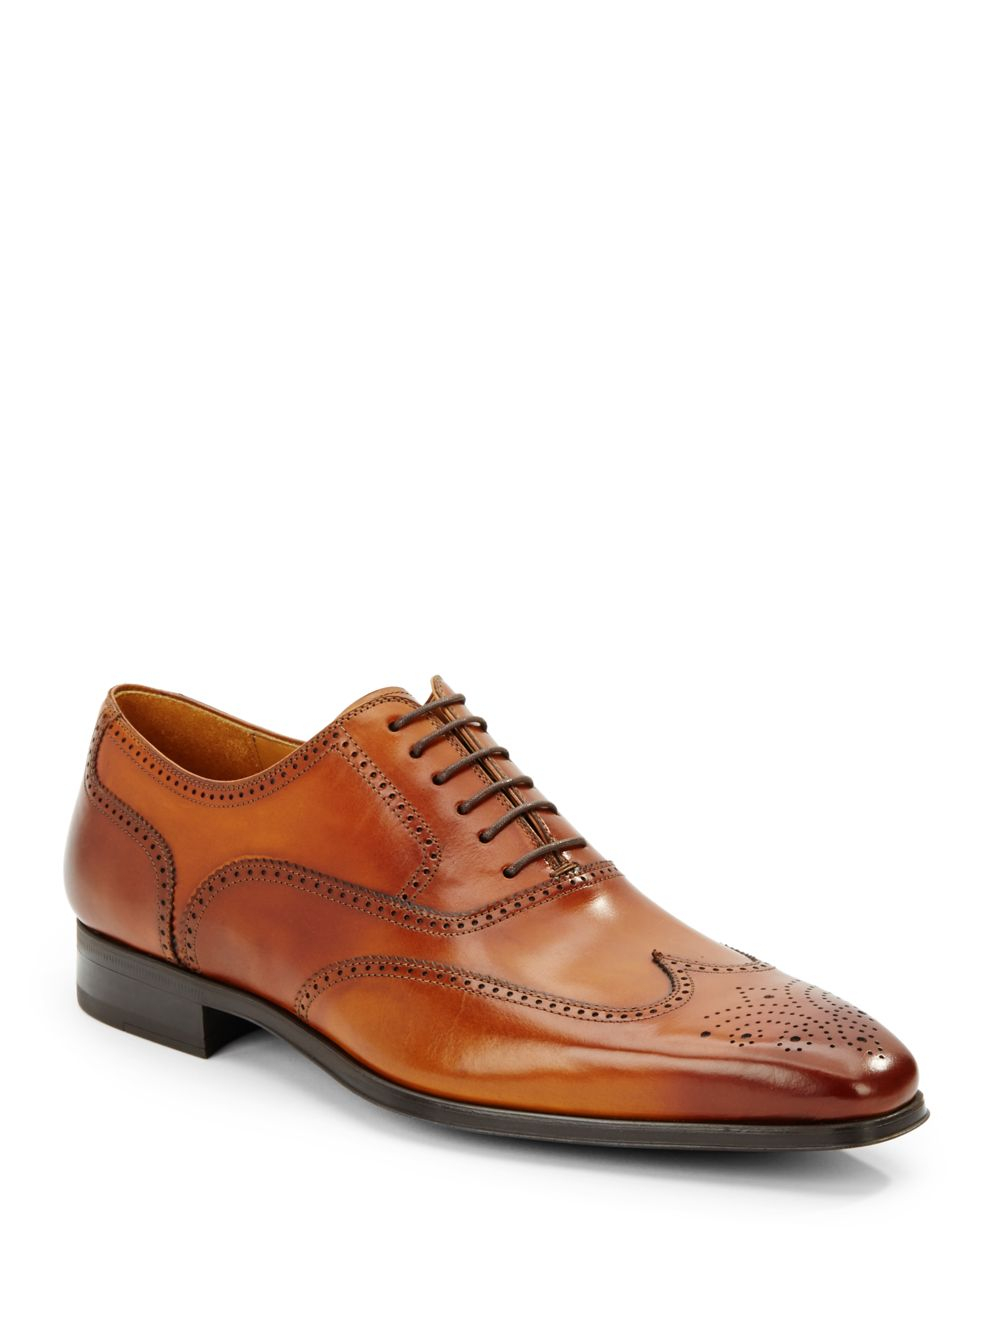 Red Leather Wingtip Shoes